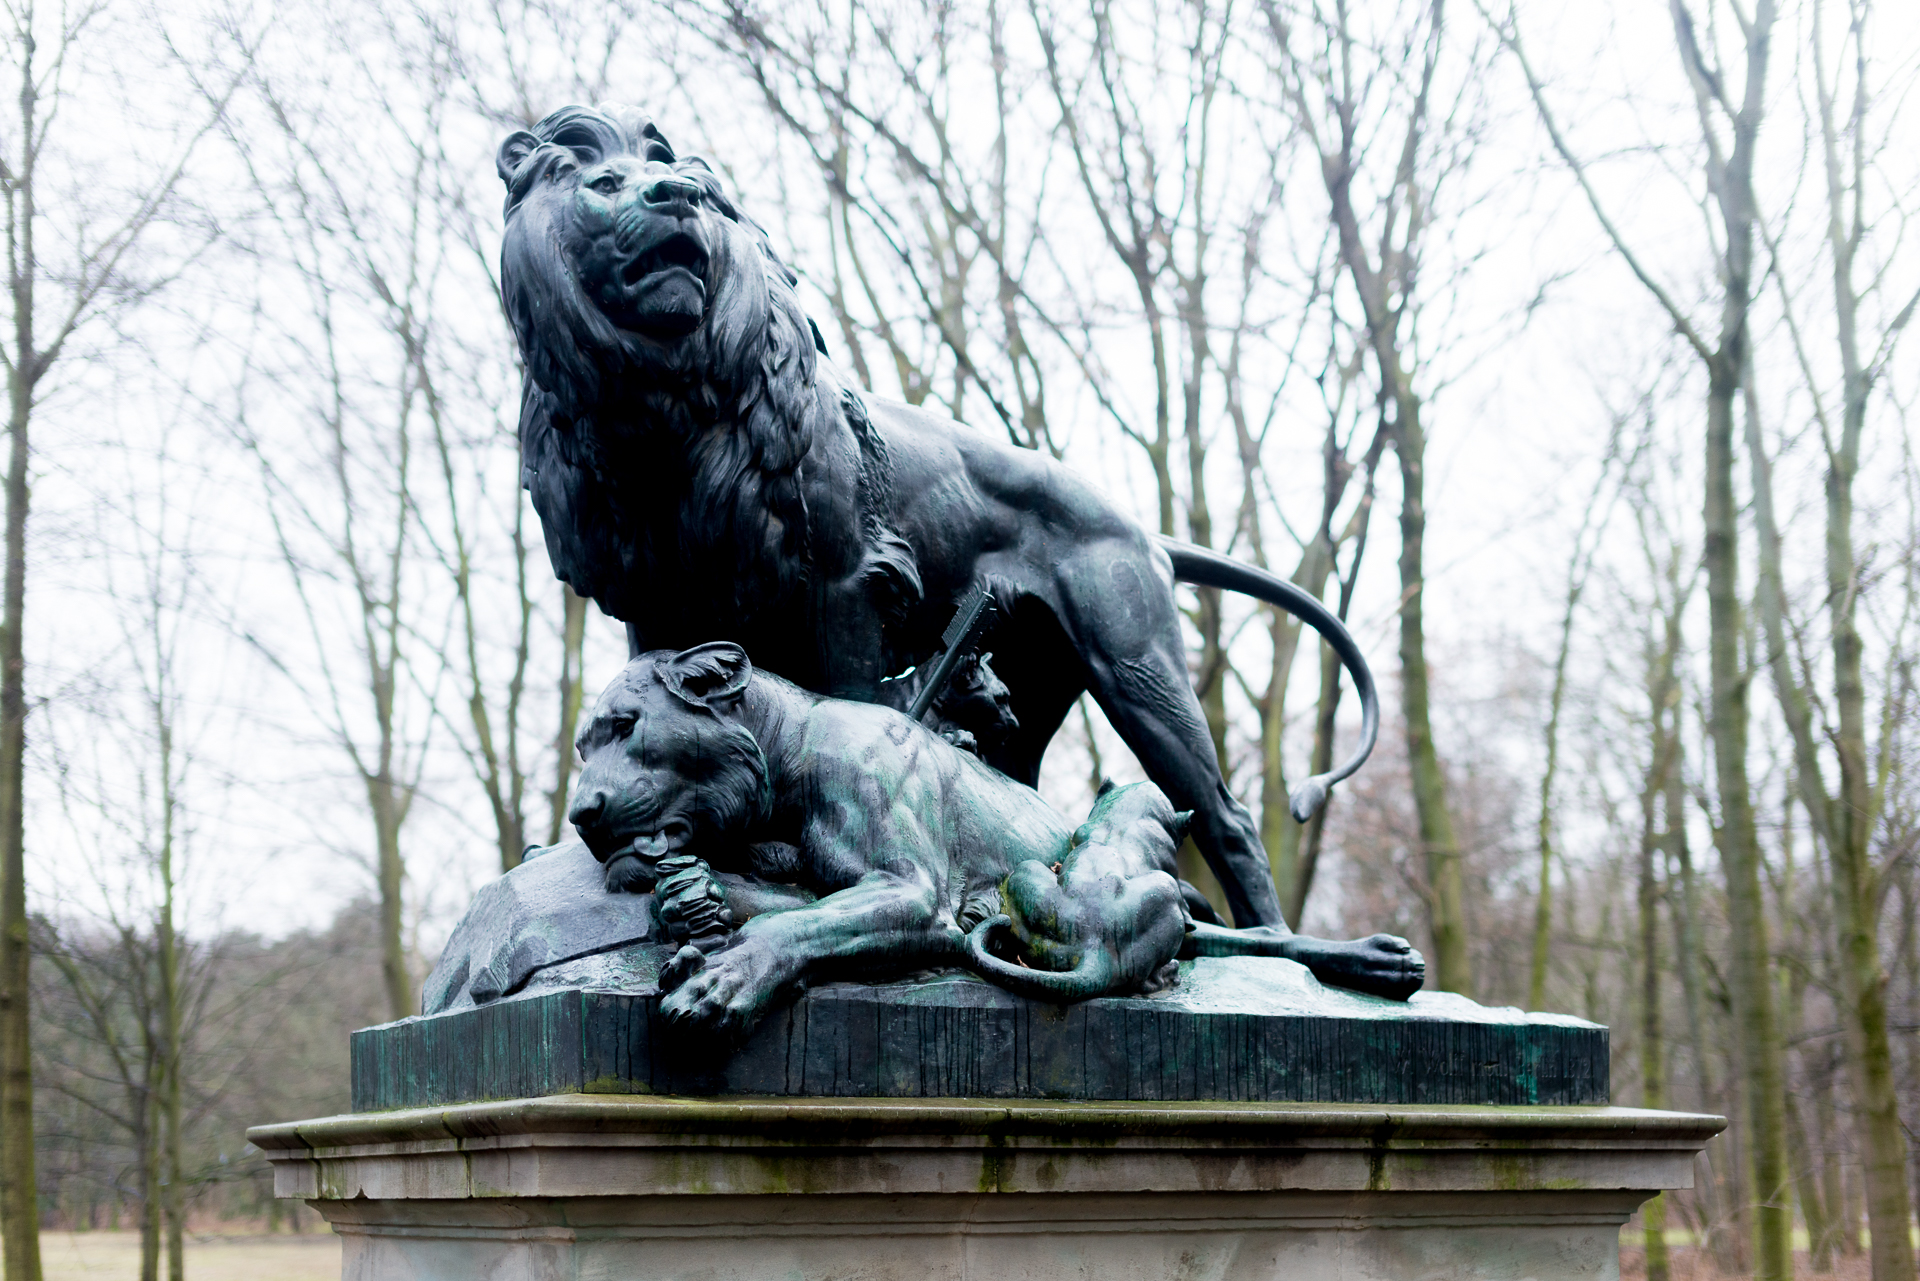 A lion statue that represents Tiergarten Park's hunting past in Berlin, Germany